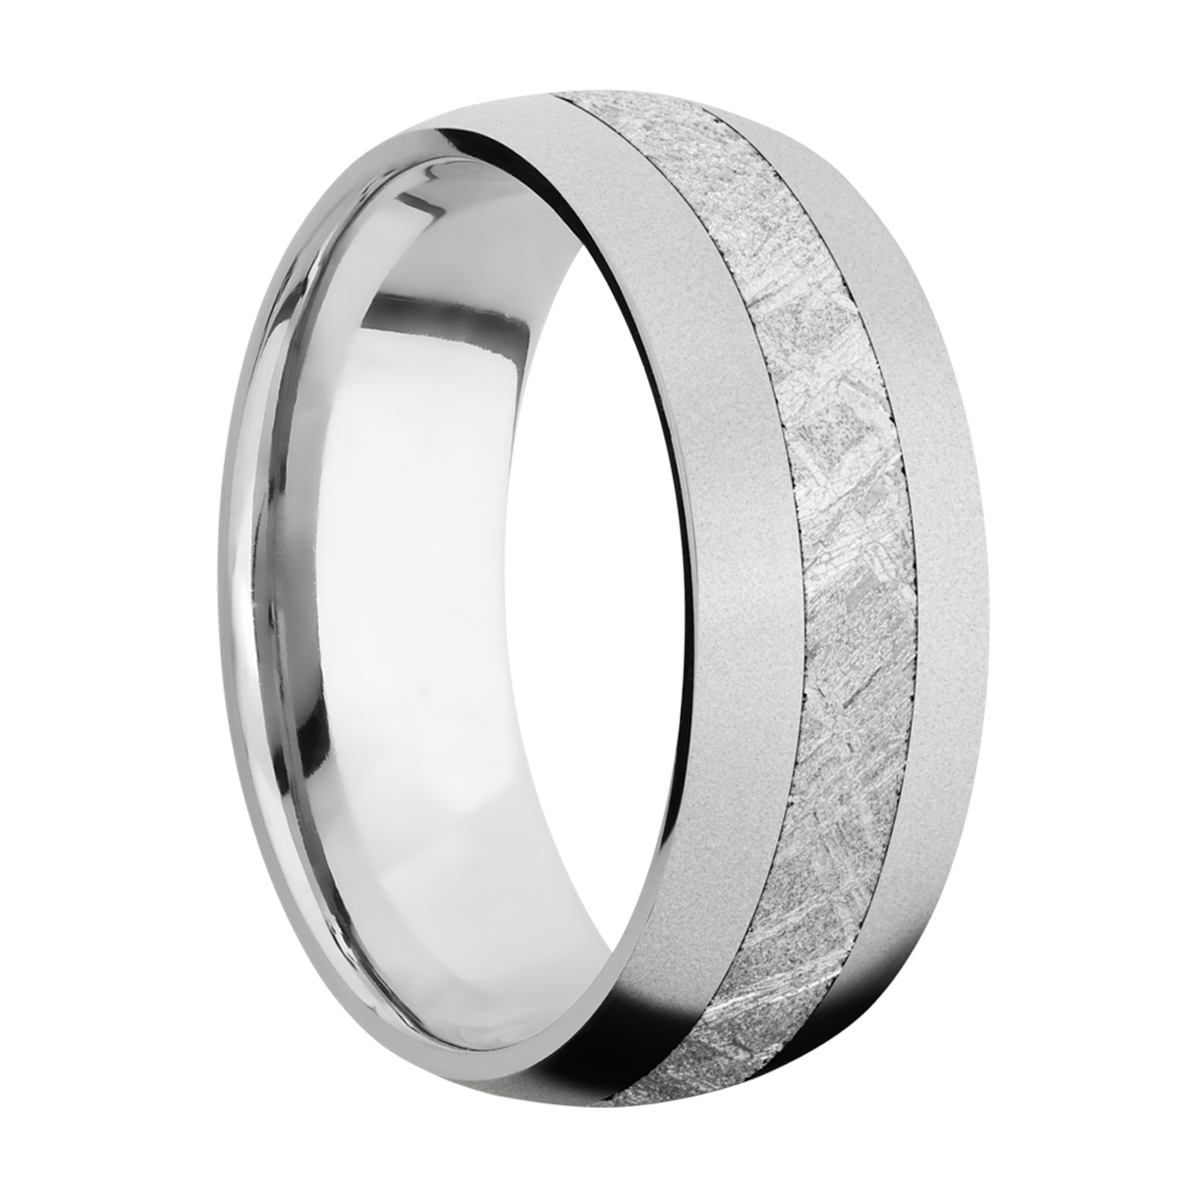 Lashbrook CC8D13/METEORITE Cobalt Chrome Wedding Ring or Band Alternative View 1